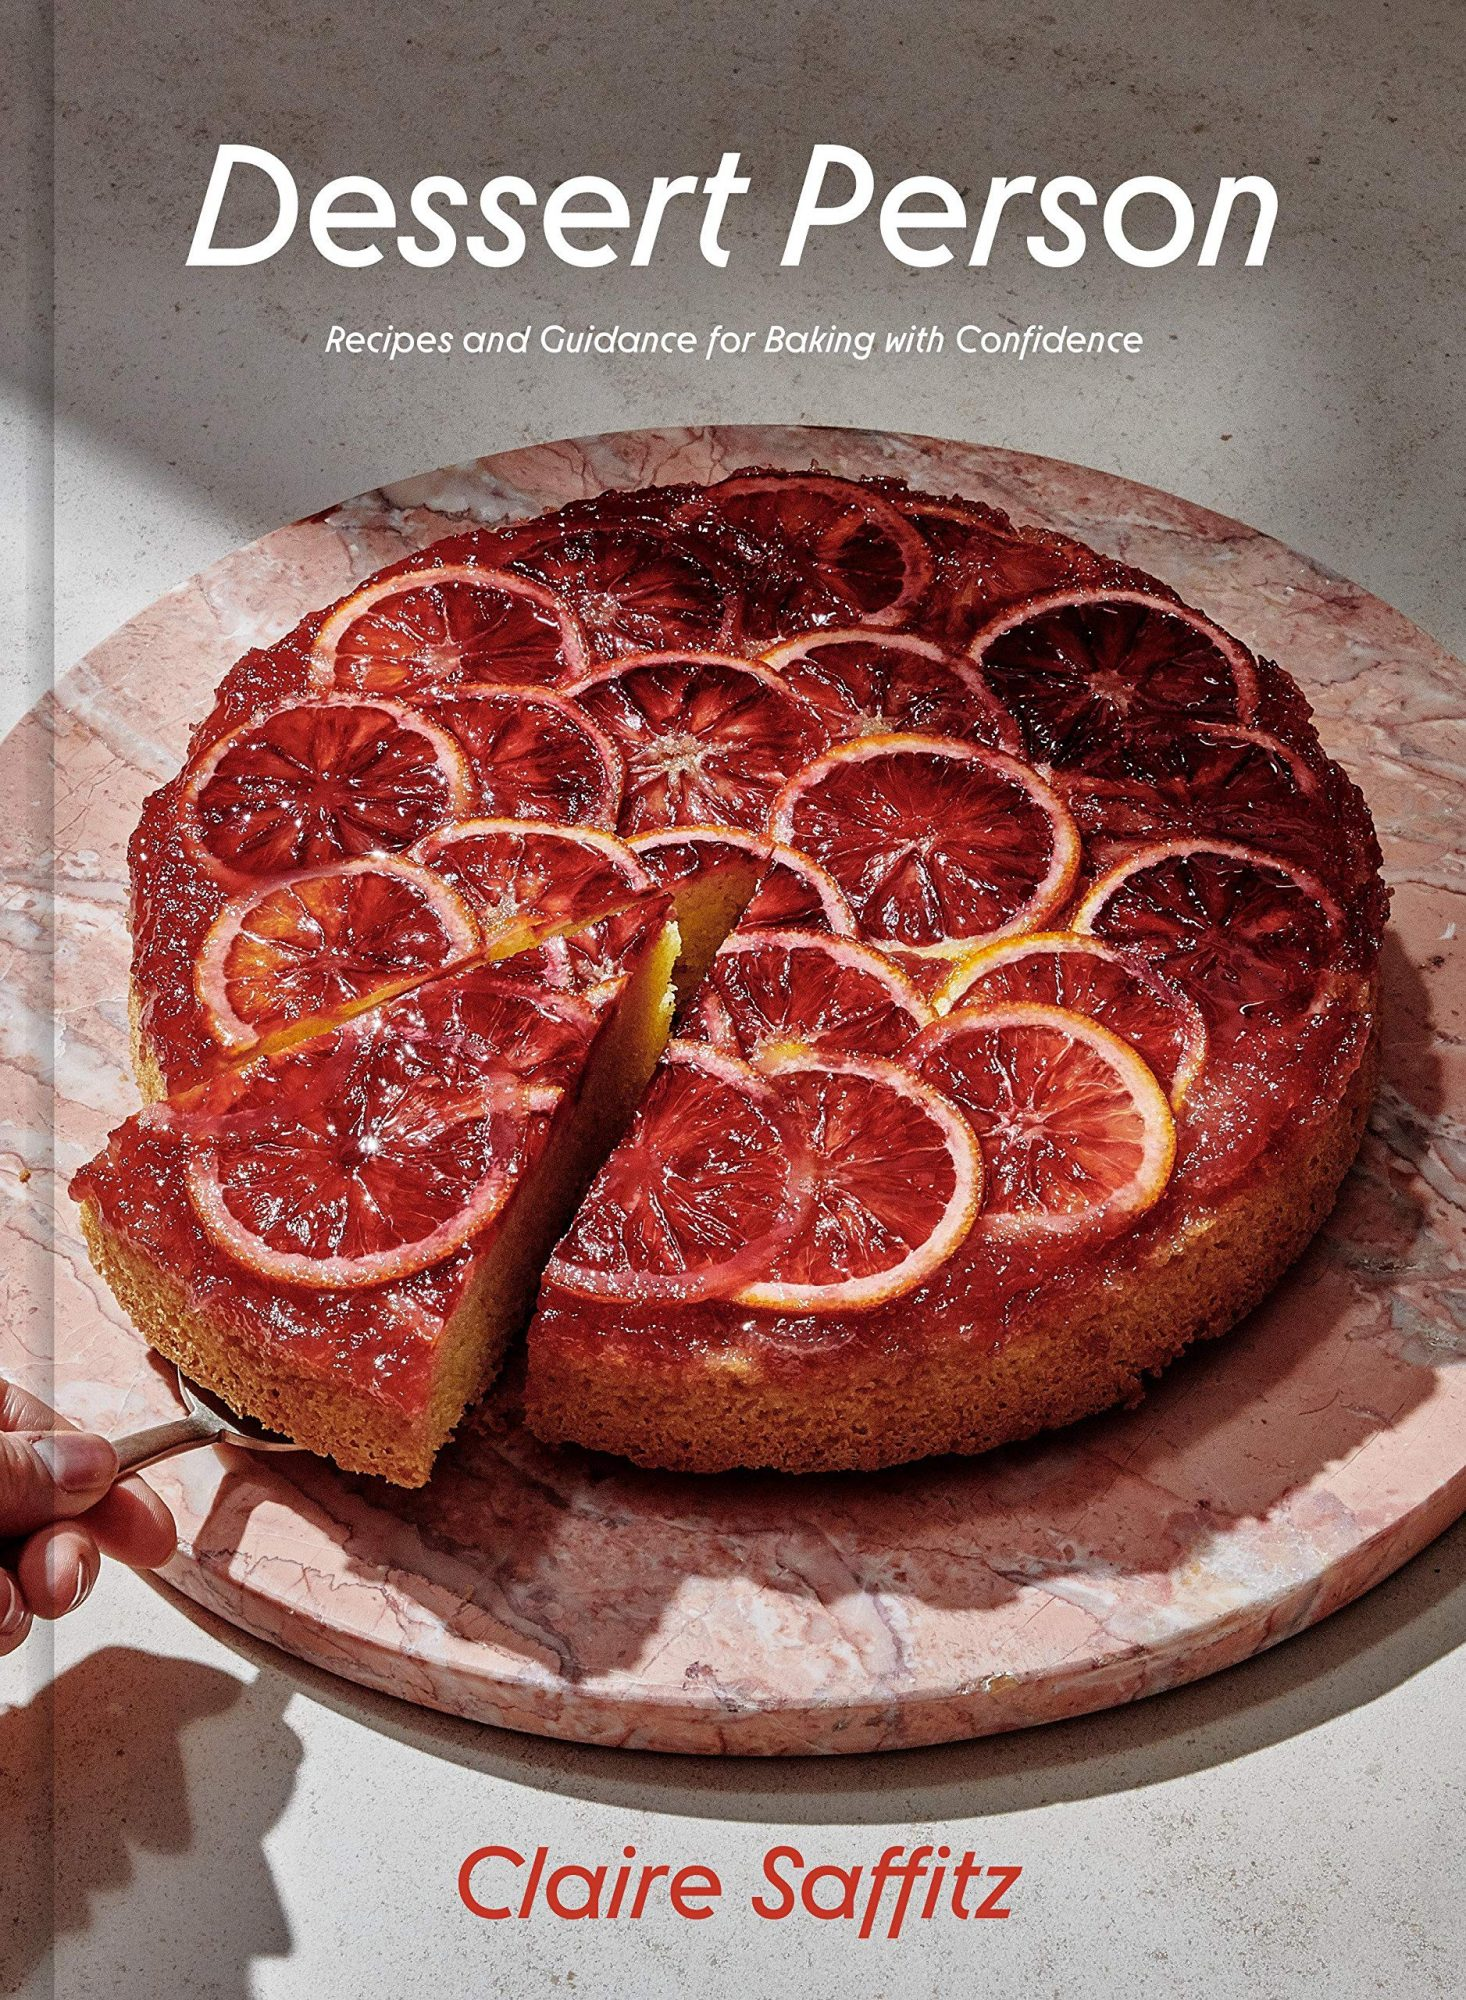 Cookbook cover with grapefruit tart photo on it